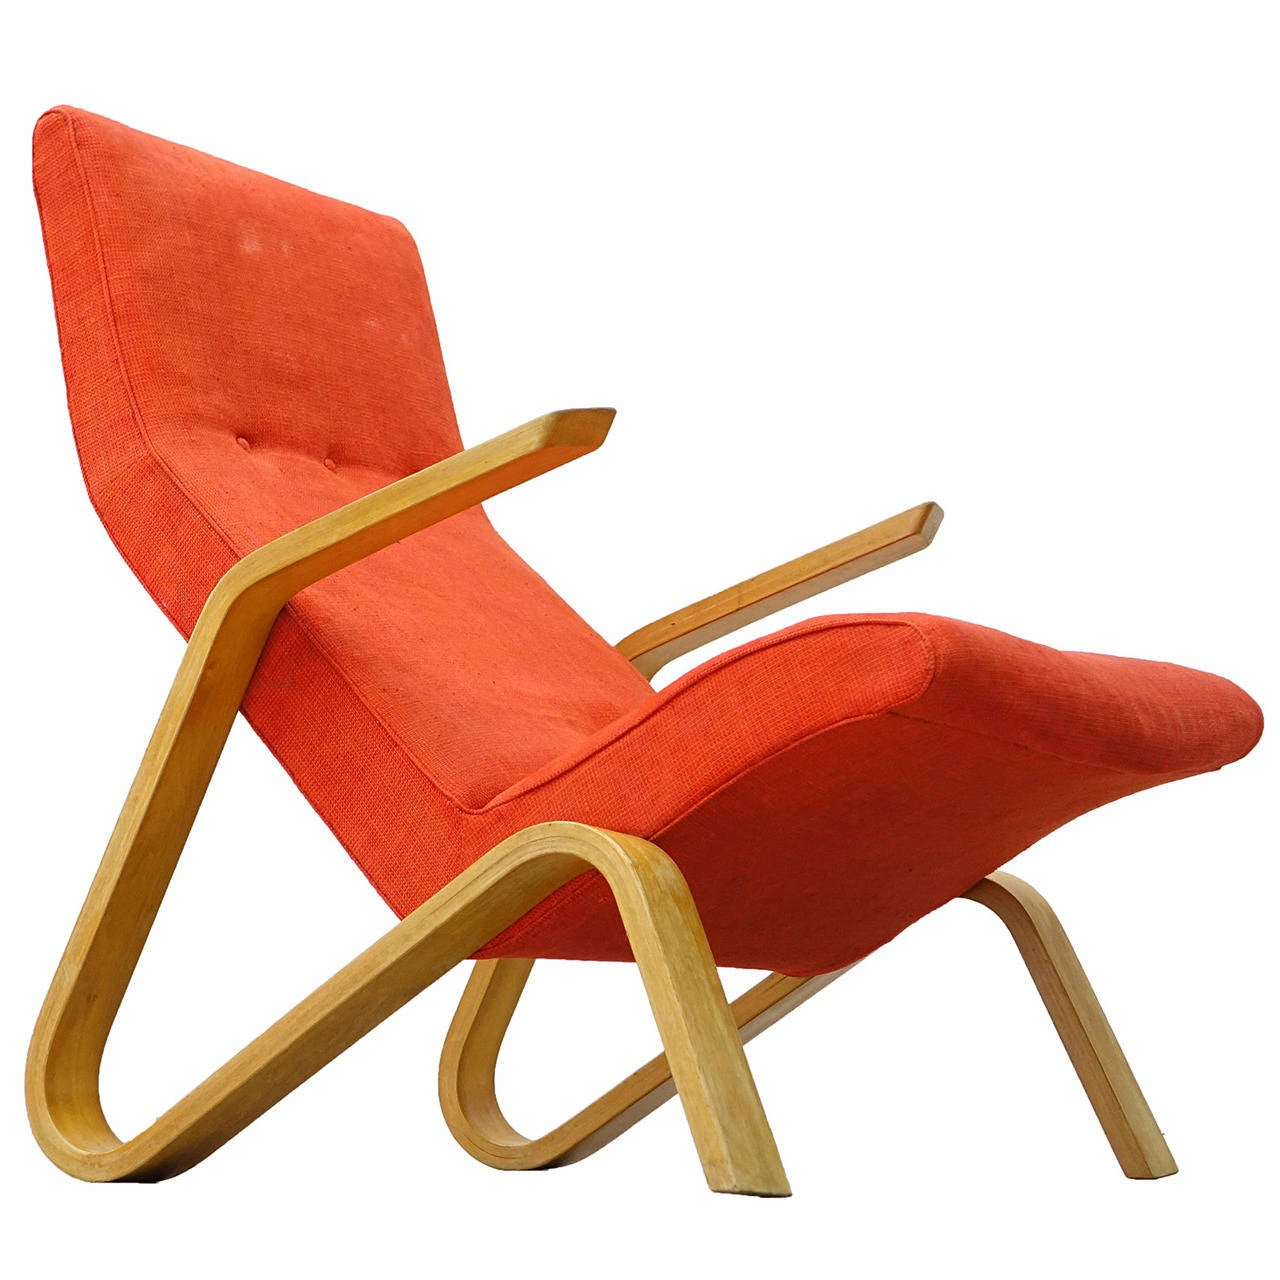 Genial Eero Saarinen For Knoll International 1946 Grasshopper, Lounge Easy Chair